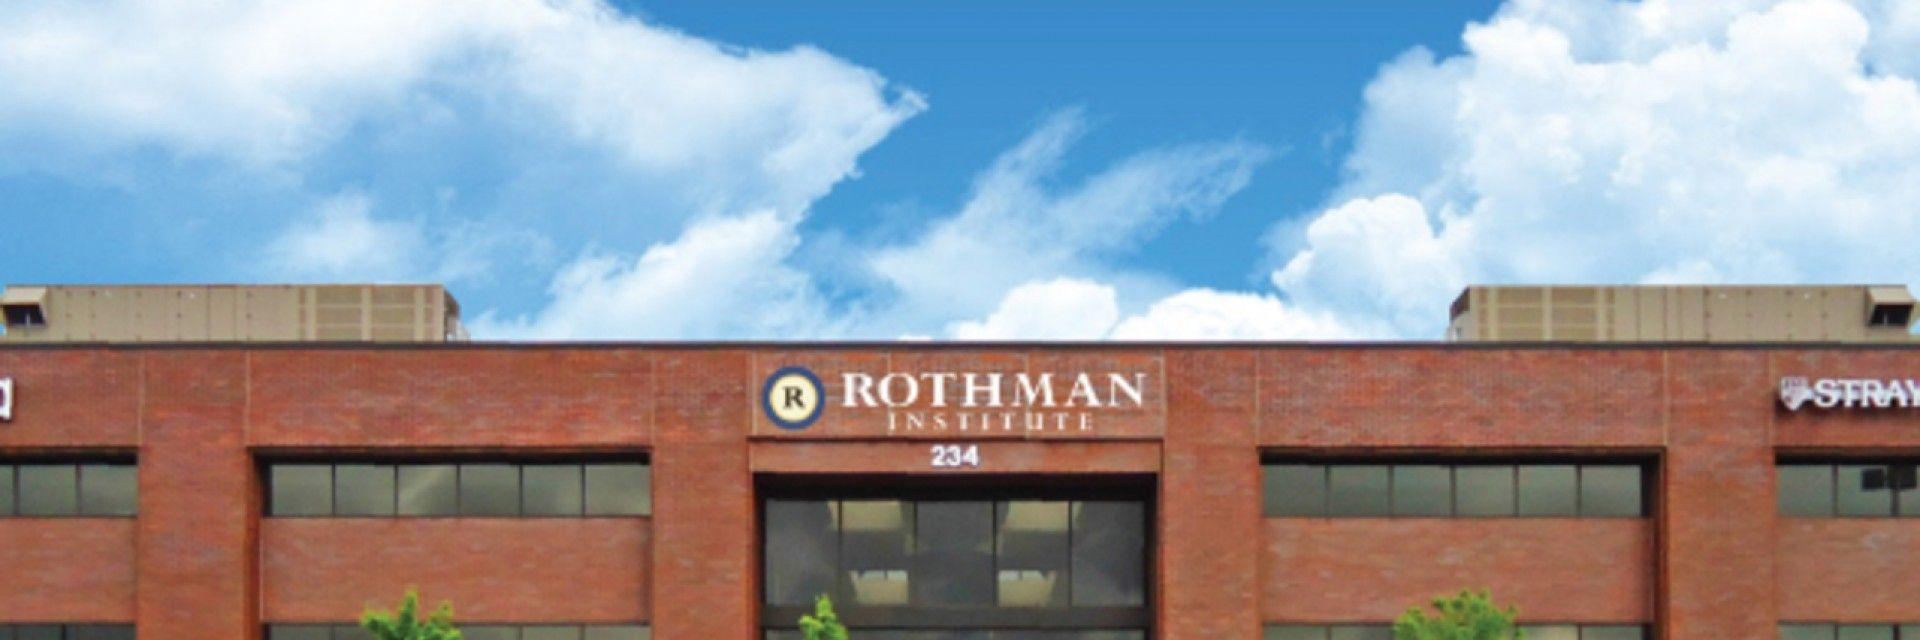 King of Prussia Rothman Institute